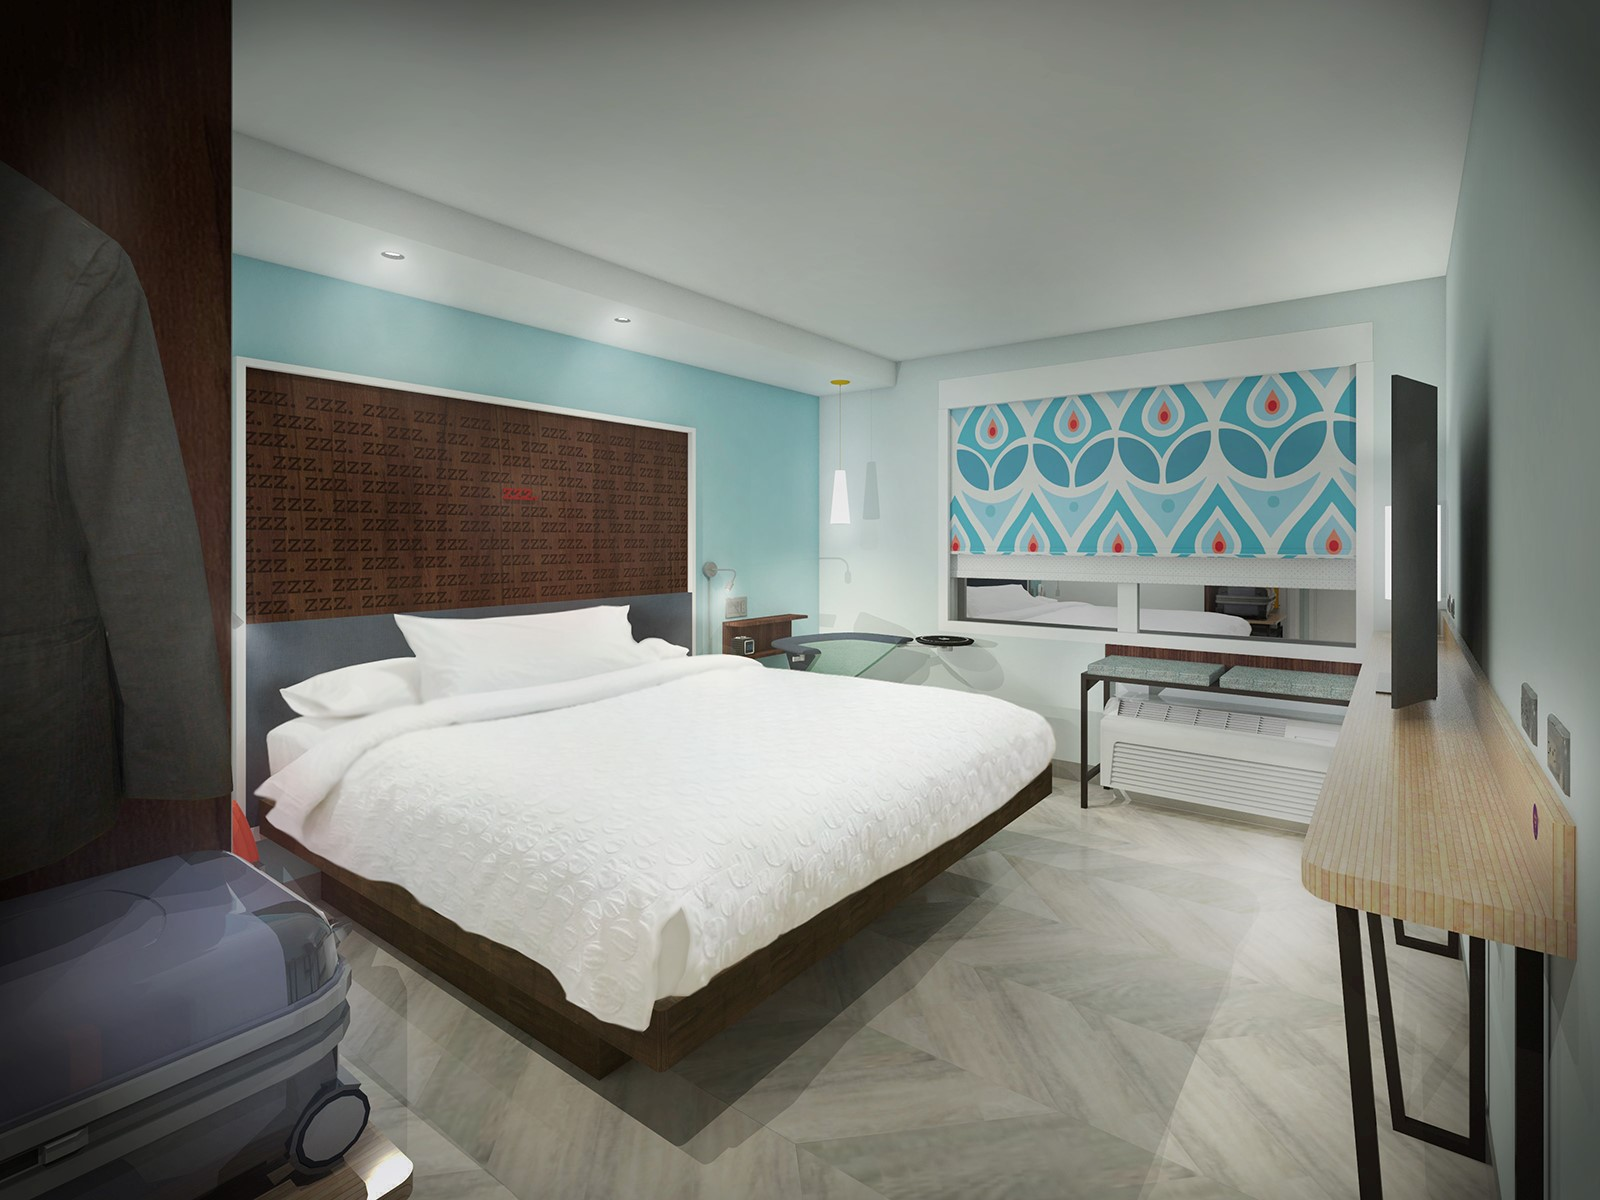 Hilton Chooses Atlanta Area For First Tru Hotel Hotel